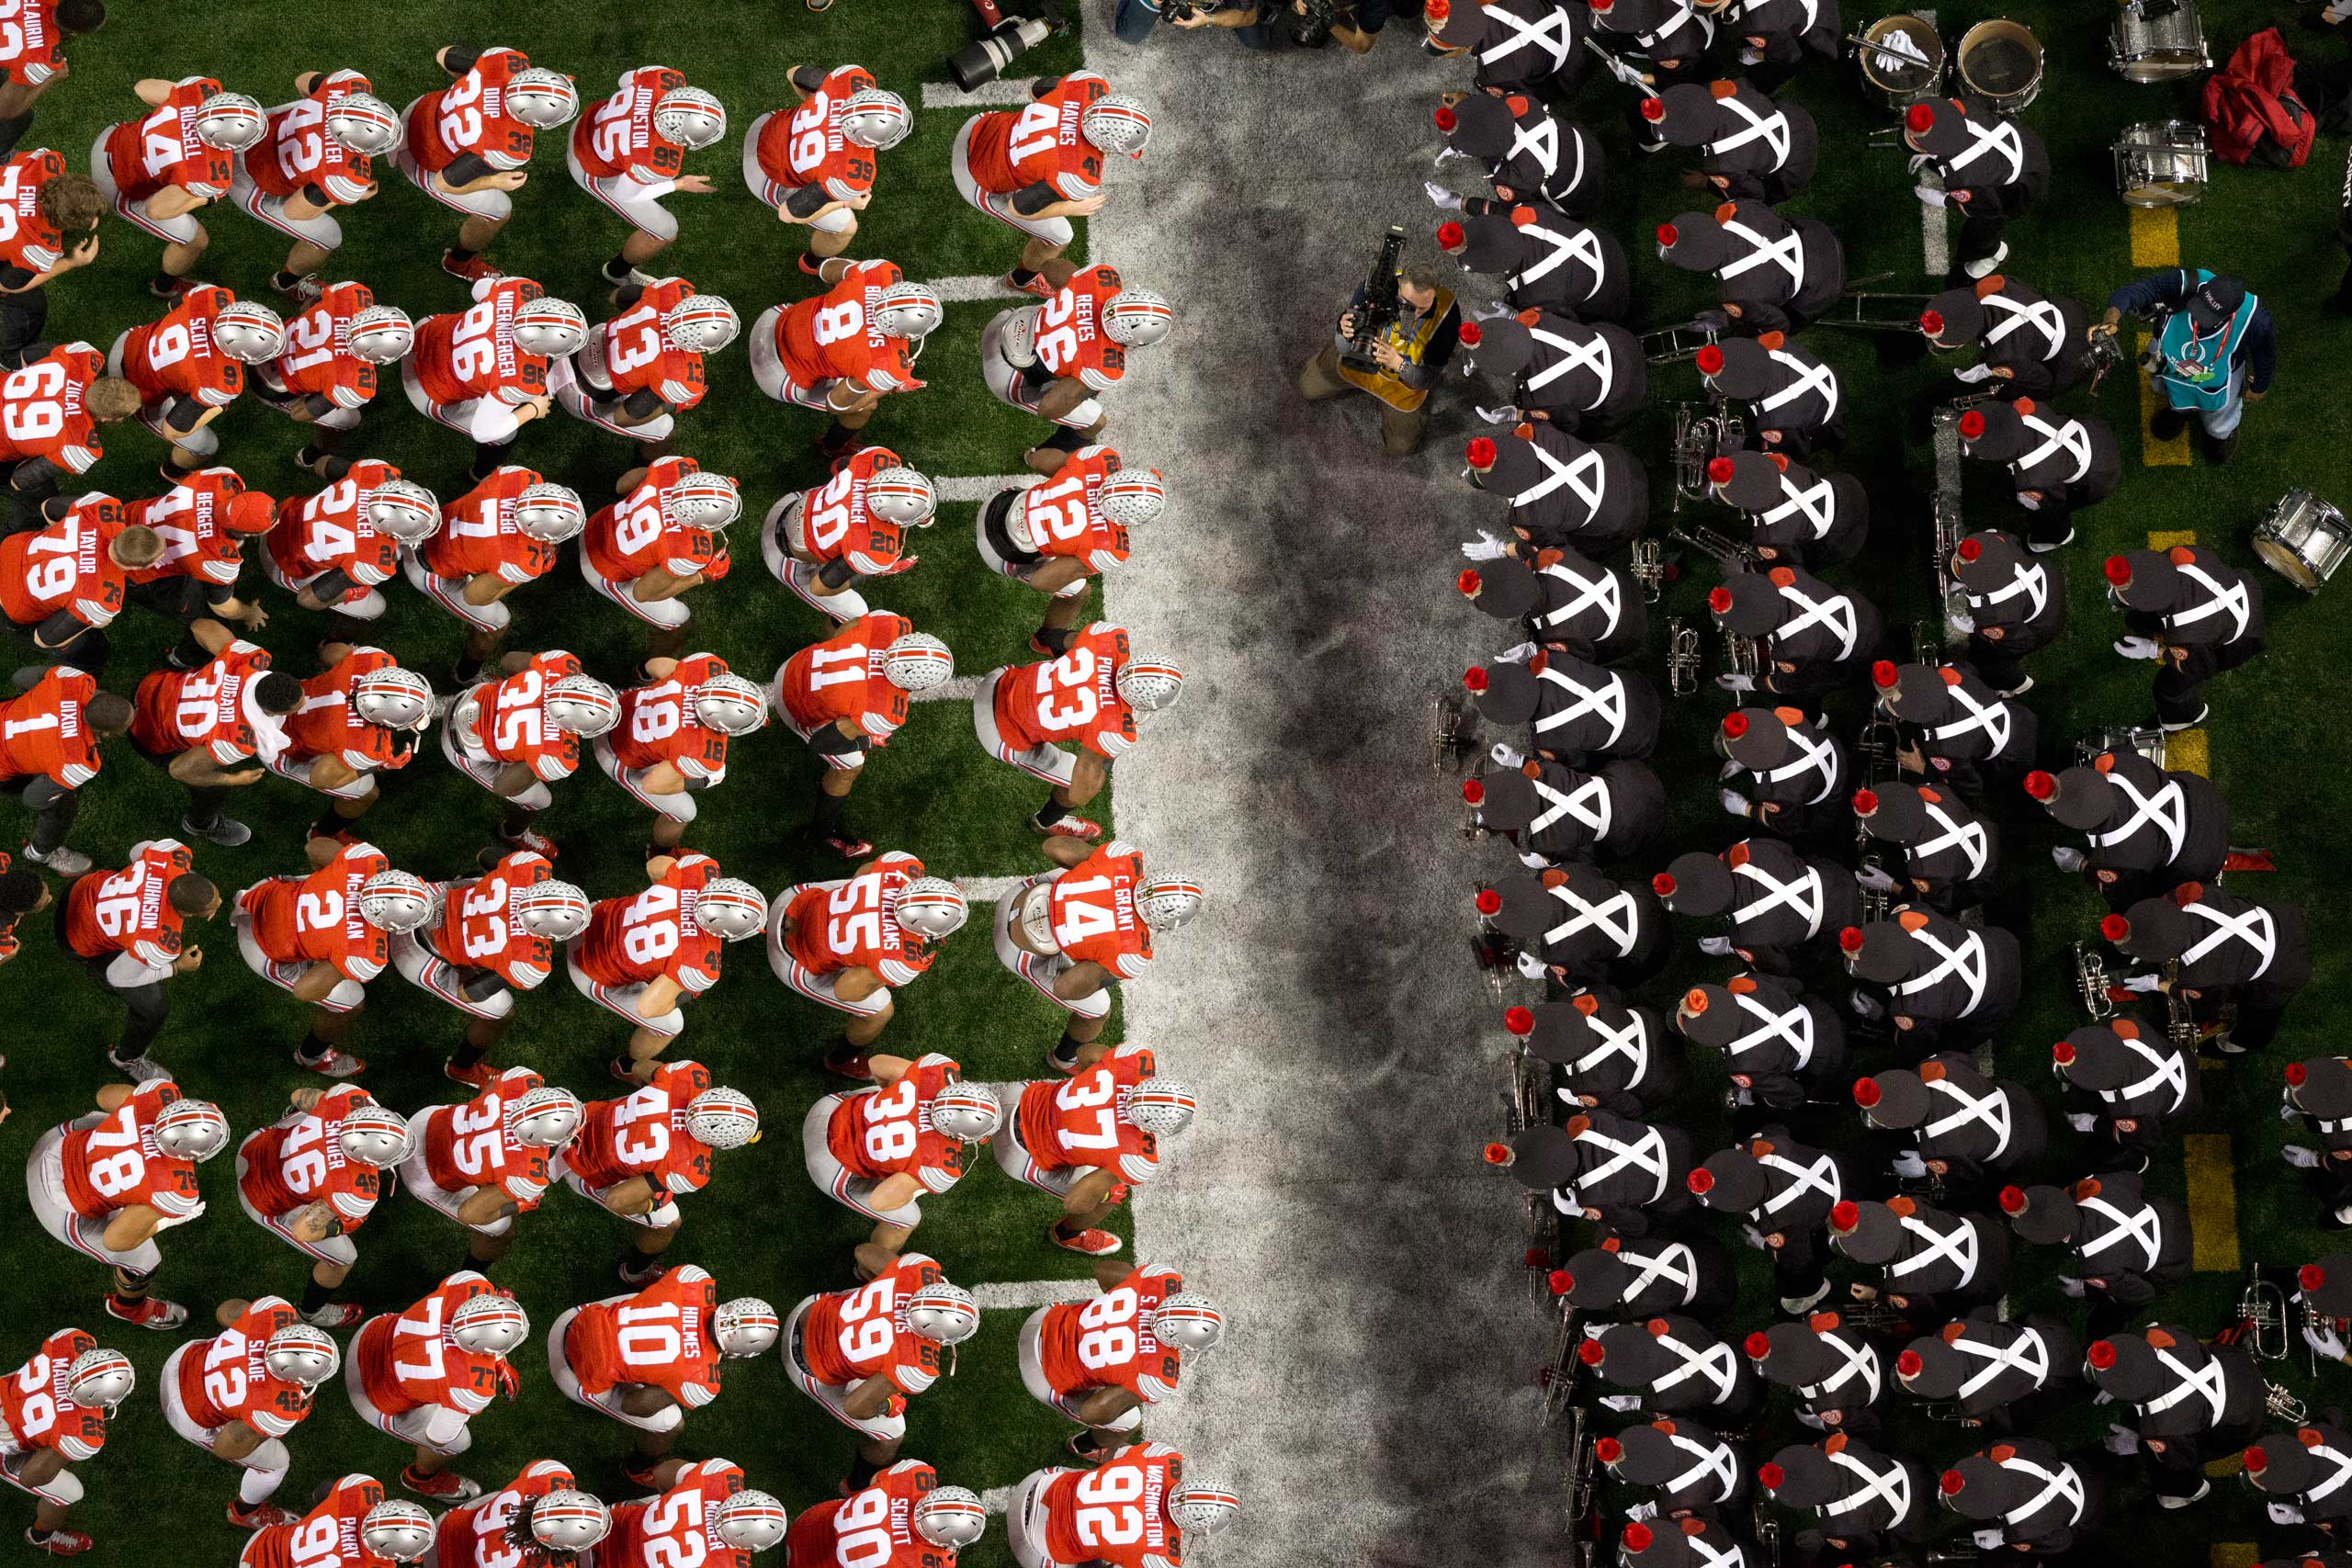 Jan. 12, 2015. The Ohio State Buckeyes football team squares off against the Ohio State University Marching Band, pre-game, National Championship game at the Cowboys Stadium, Arlington, TX.